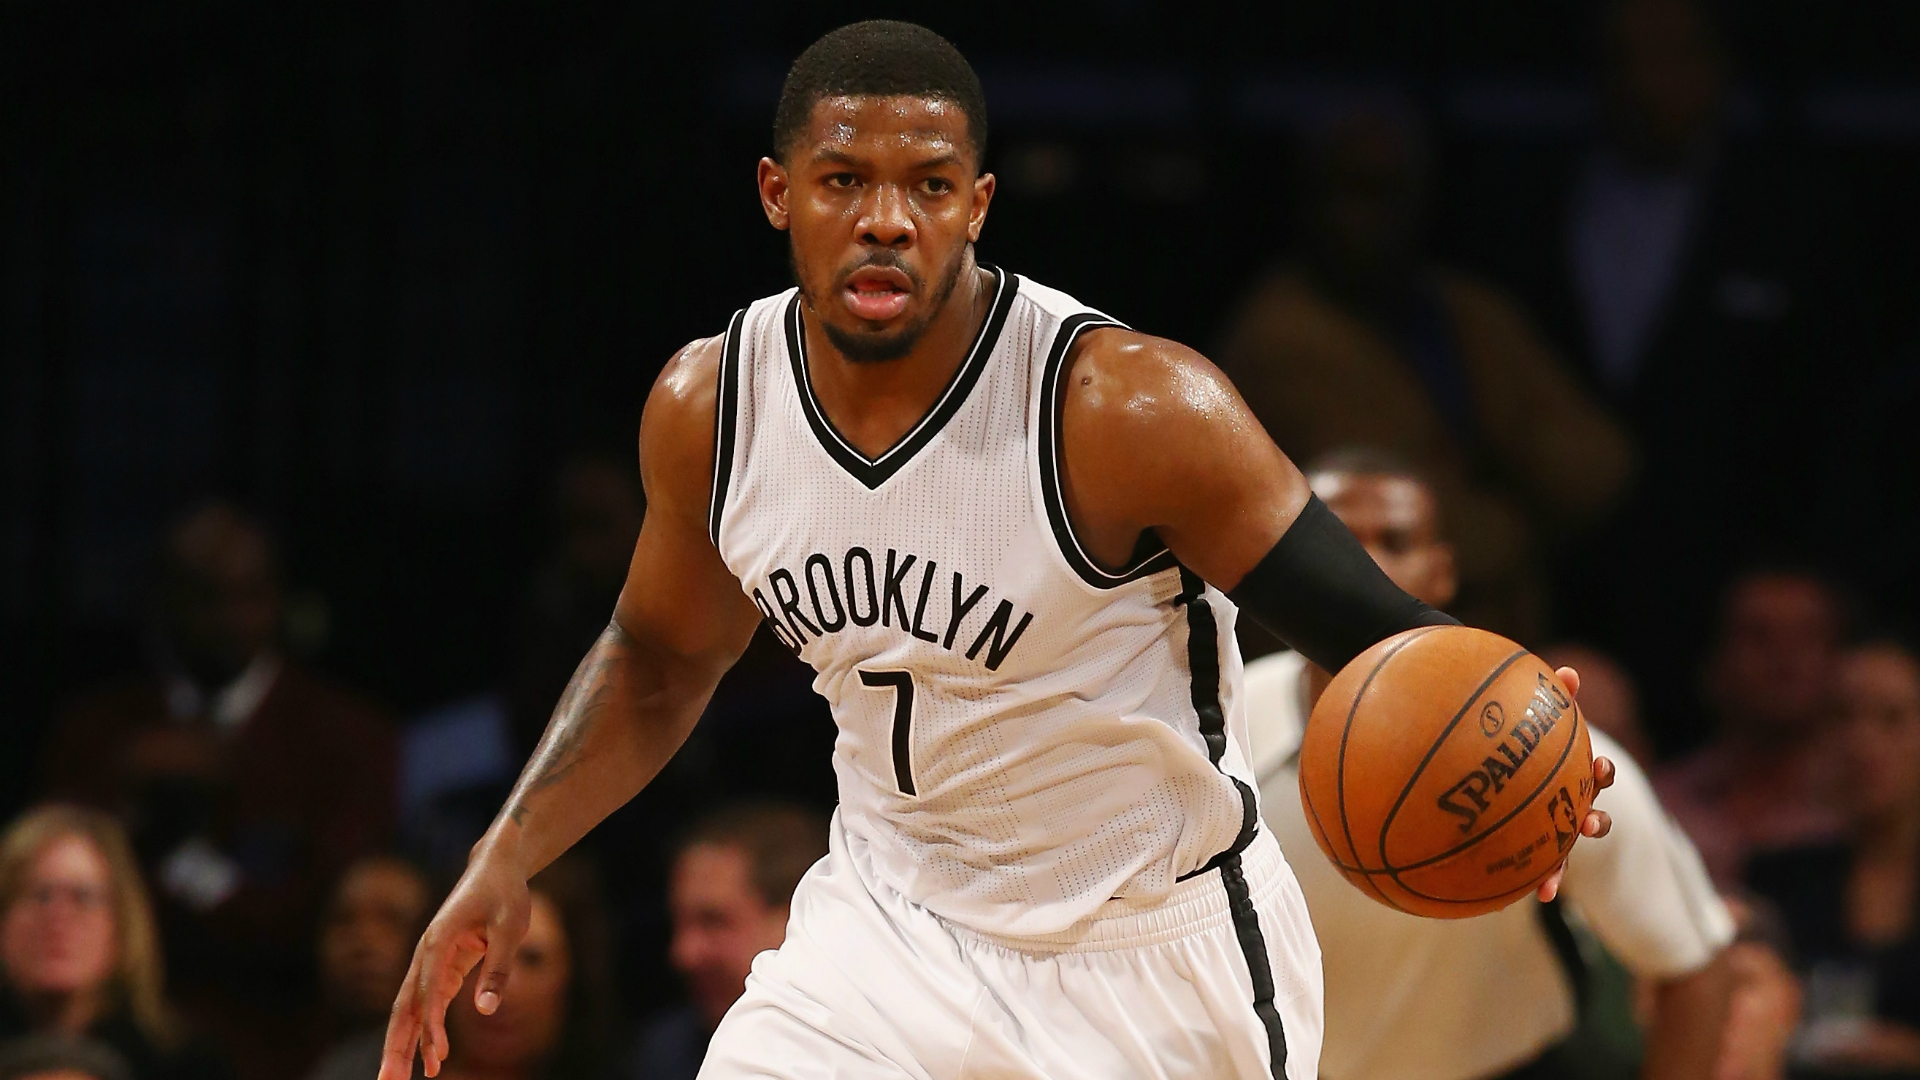 Rockets, Joe Johnson Agree to Deal